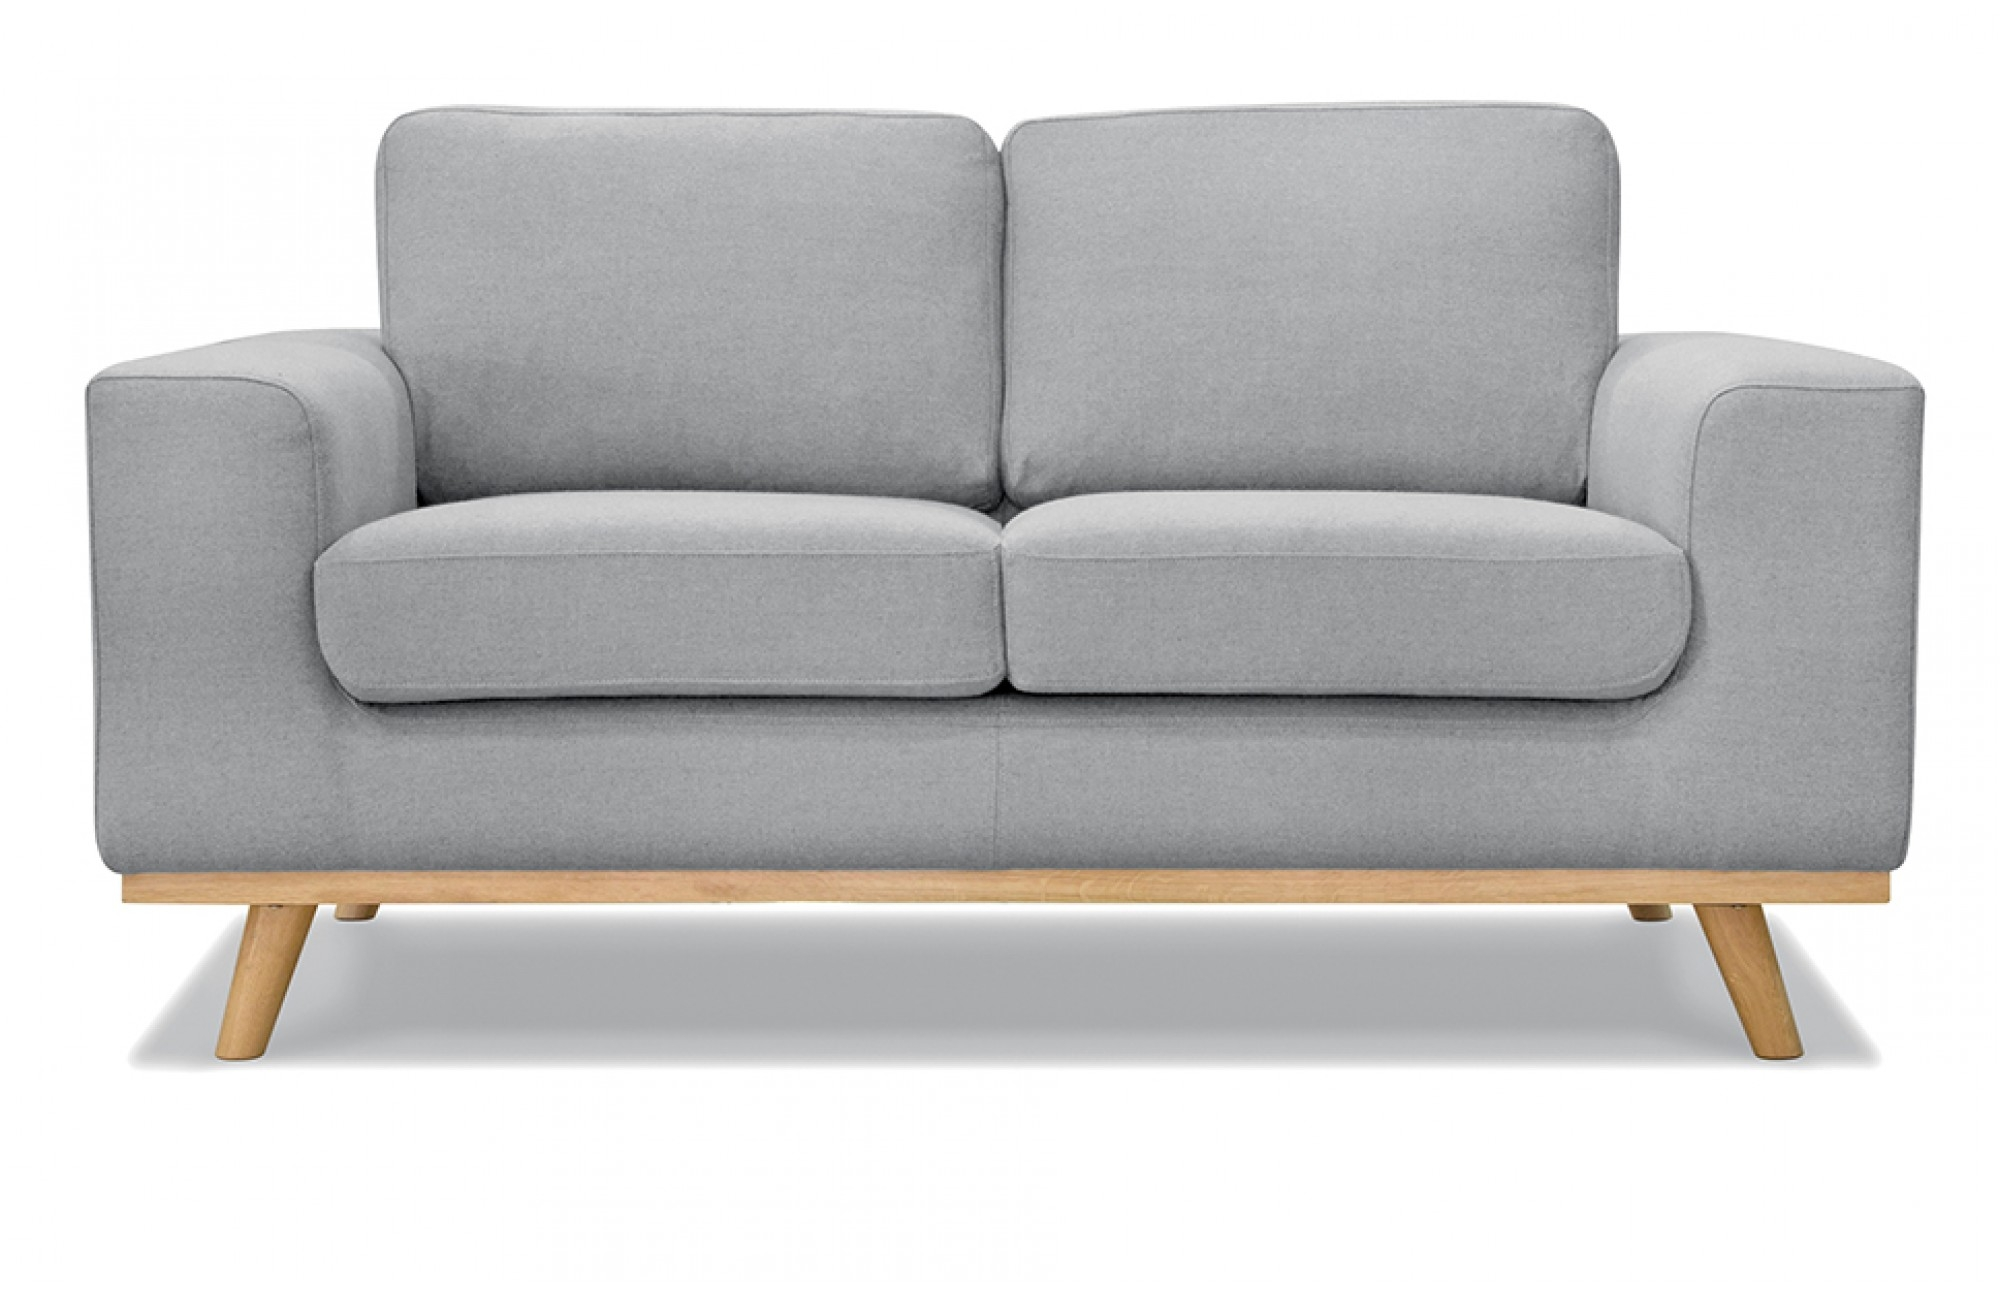 Olivia 2 Seater Sofa In Grey Out And Out Original Pertaining To 2 Seater Sofas (Image 11 of 15)